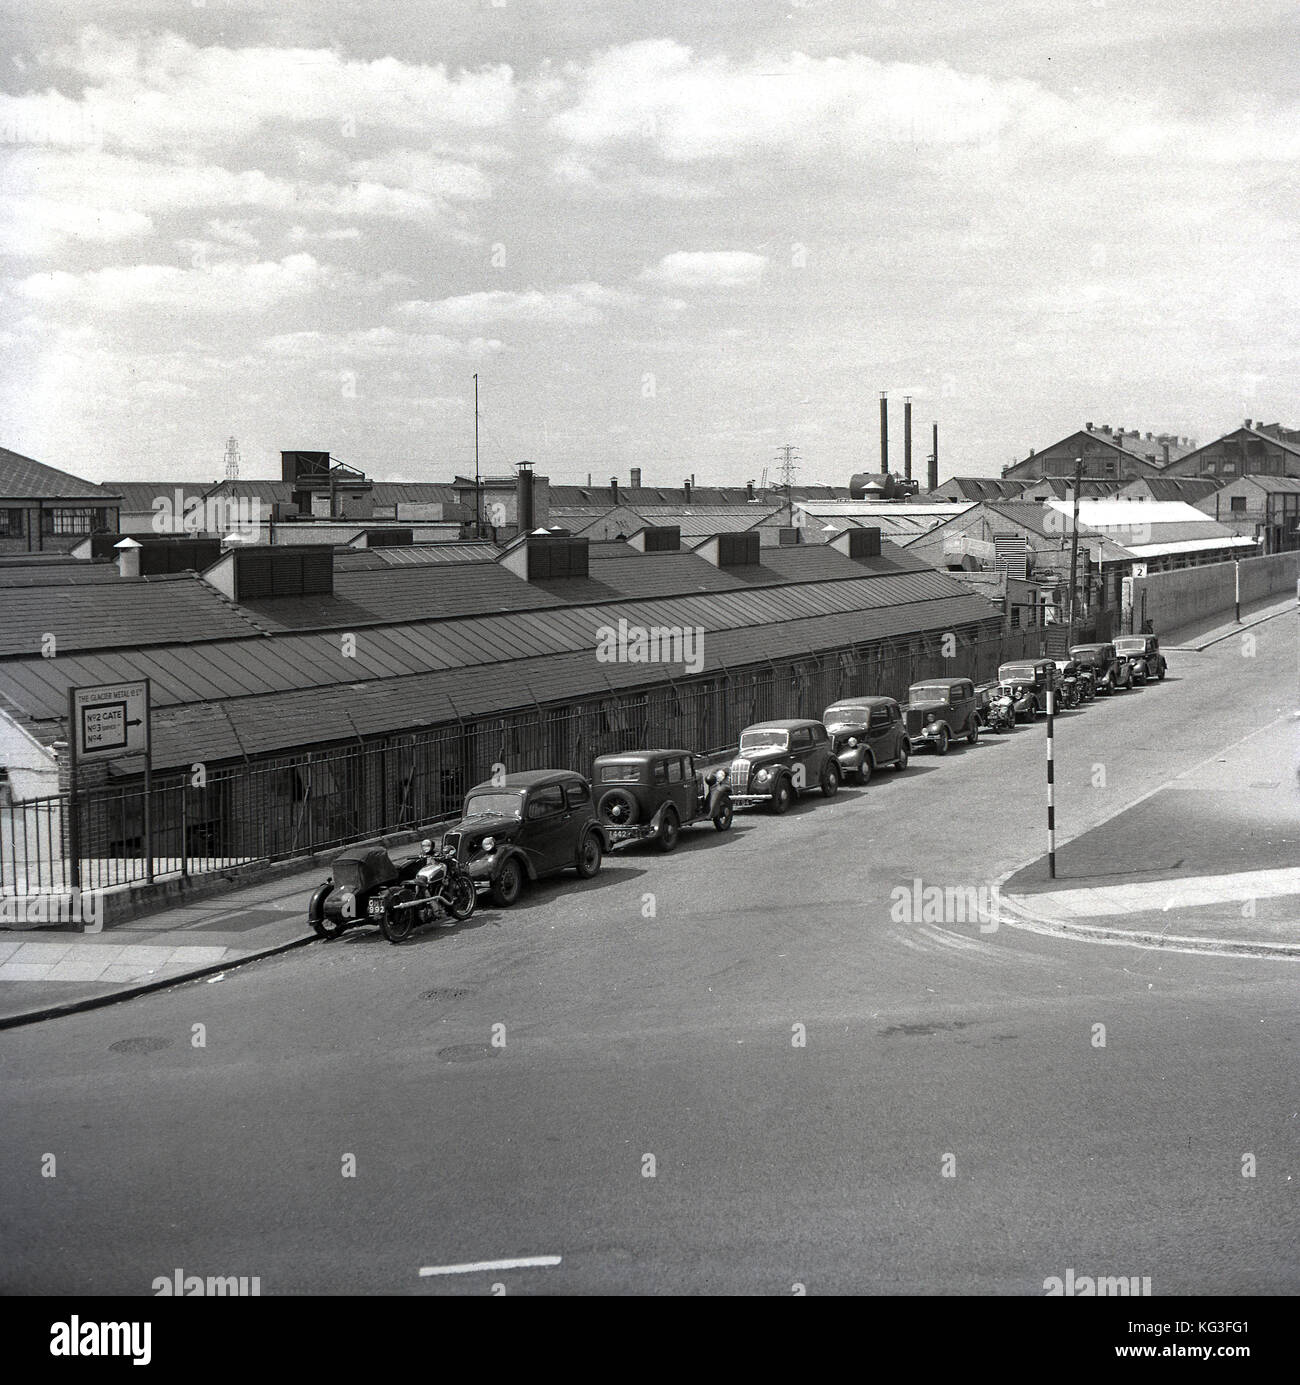 1950s, historical picture showing the industrial complex of The Glacier Meta Company Ltd at Alperton, Wembley, England - Stock Image